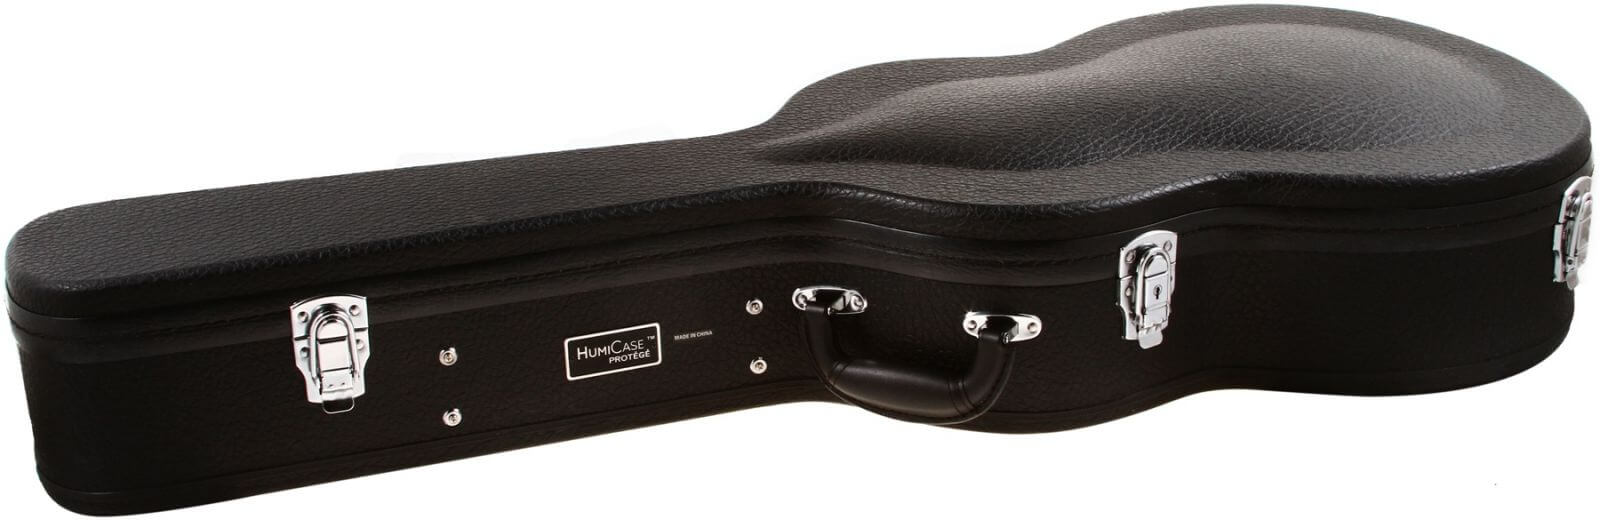 Best Classical Guitar Case for the Value